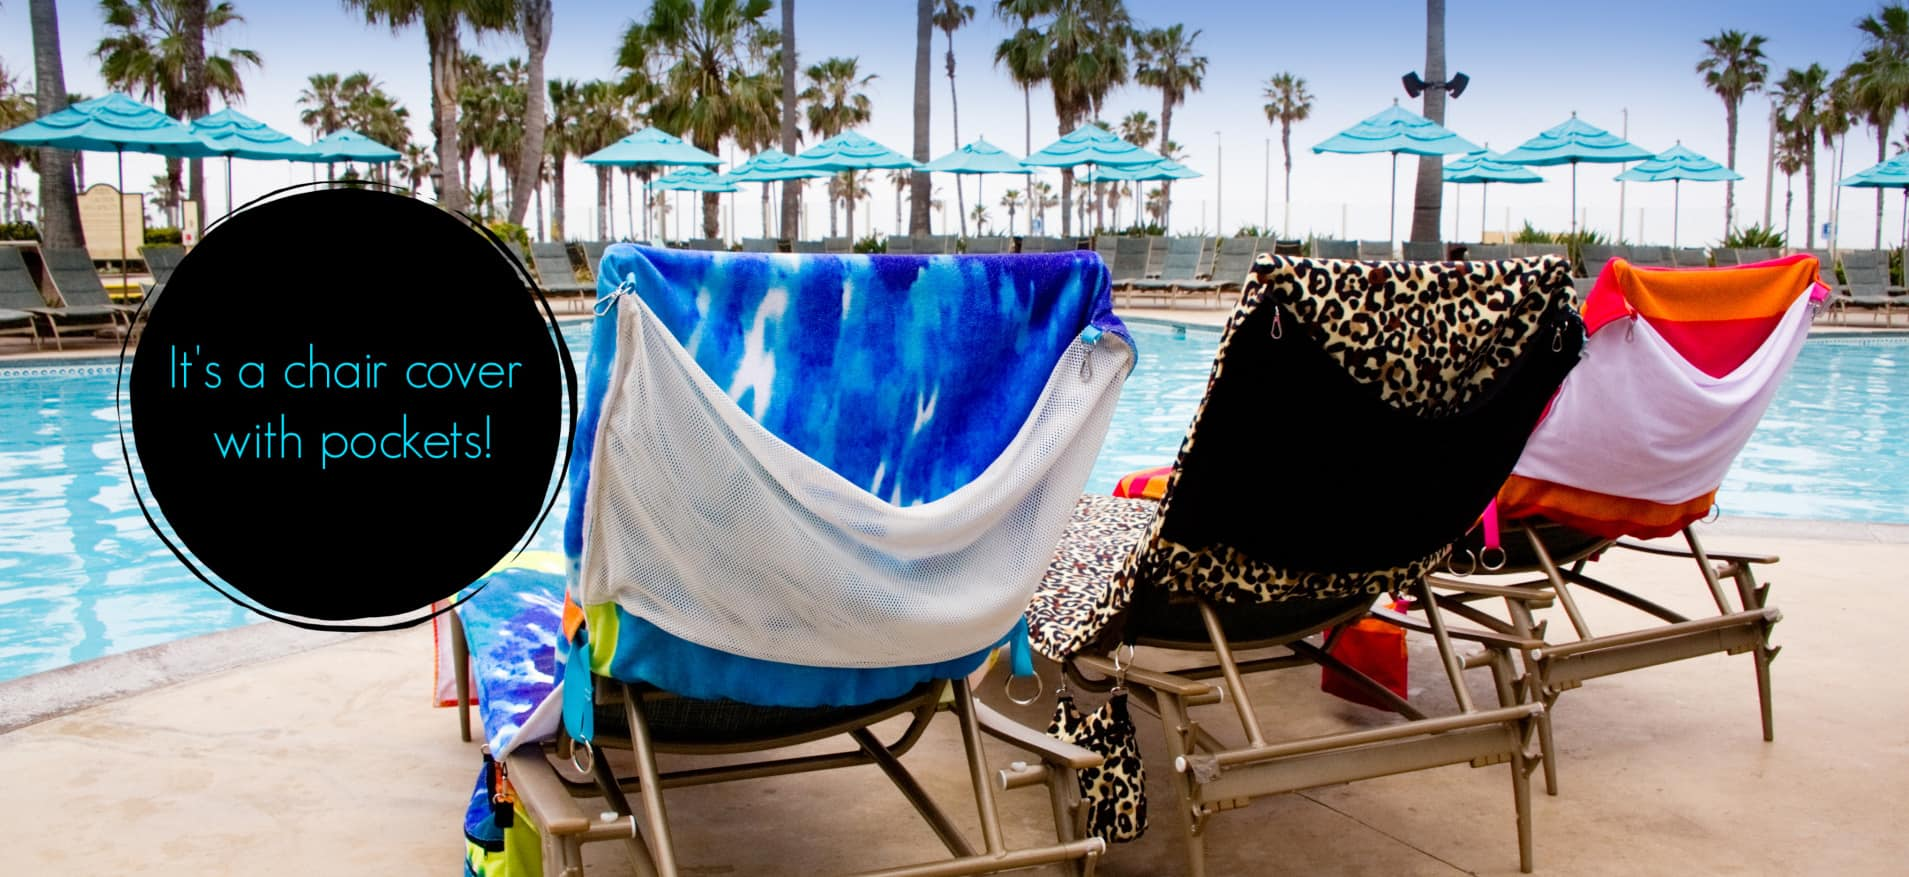 Pool Pack Lounge Chair covers with pockets by a pool.